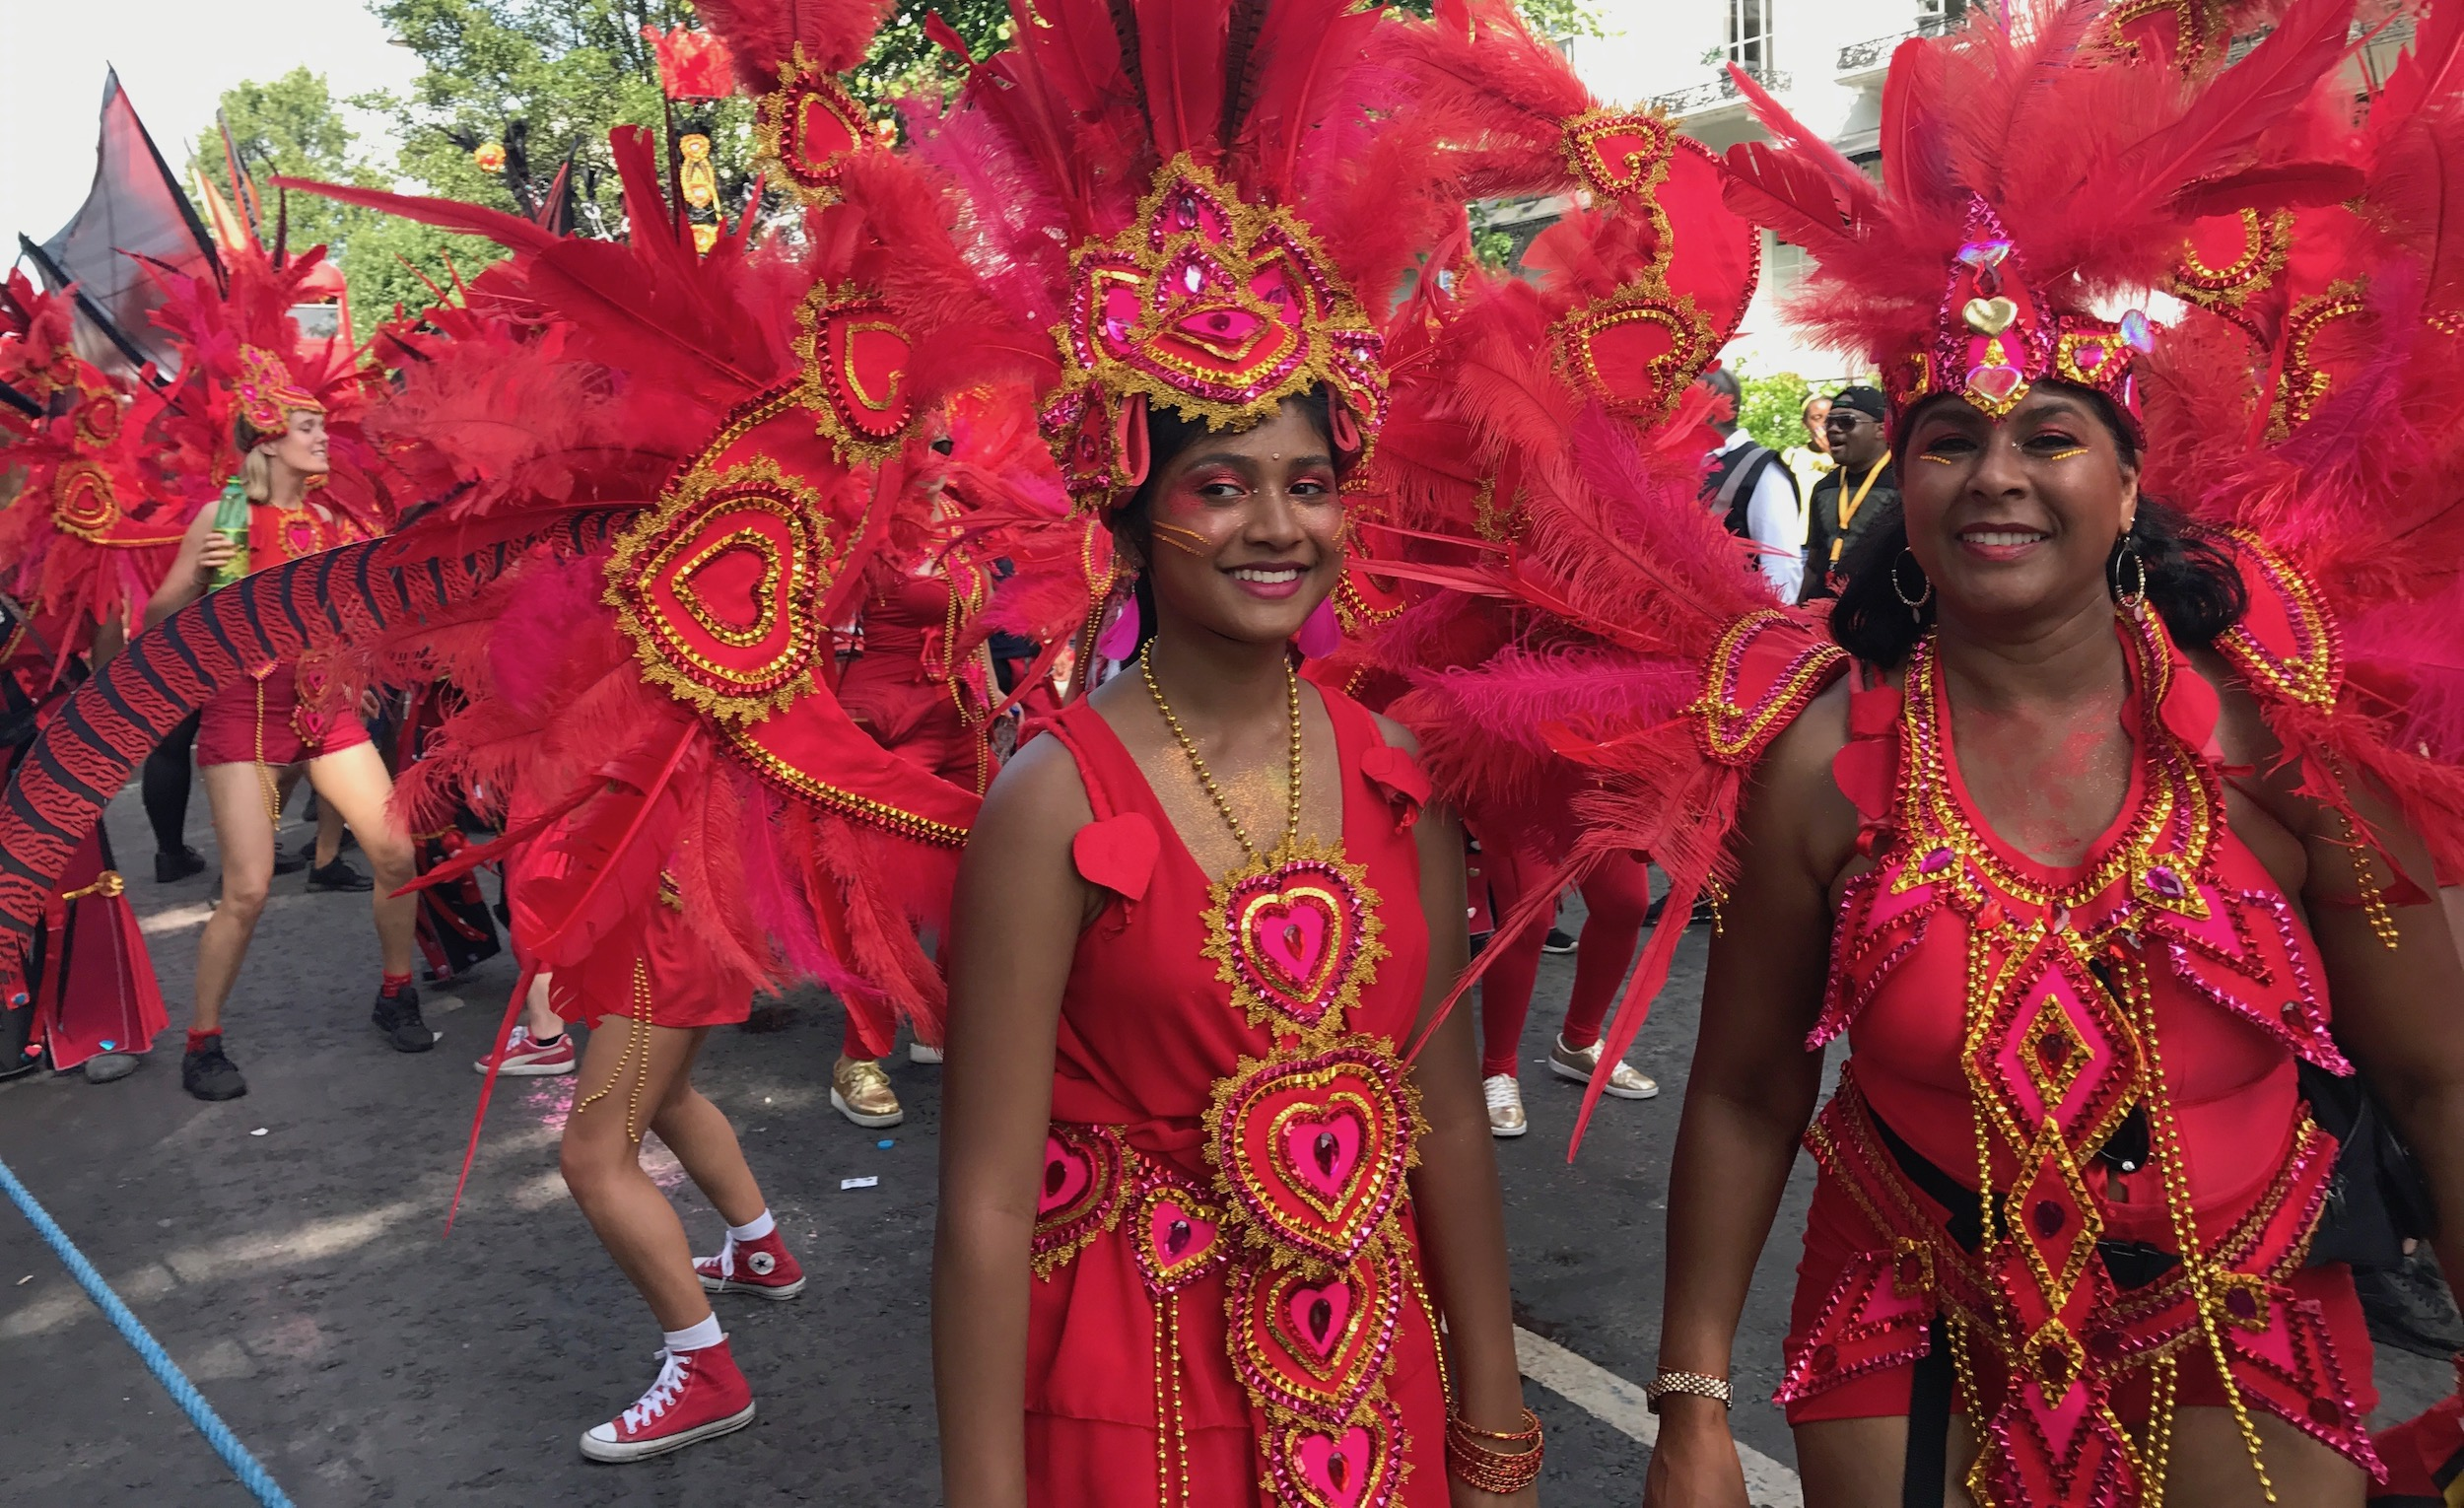 Dancers in Red. Notting Hill Carnival 2017